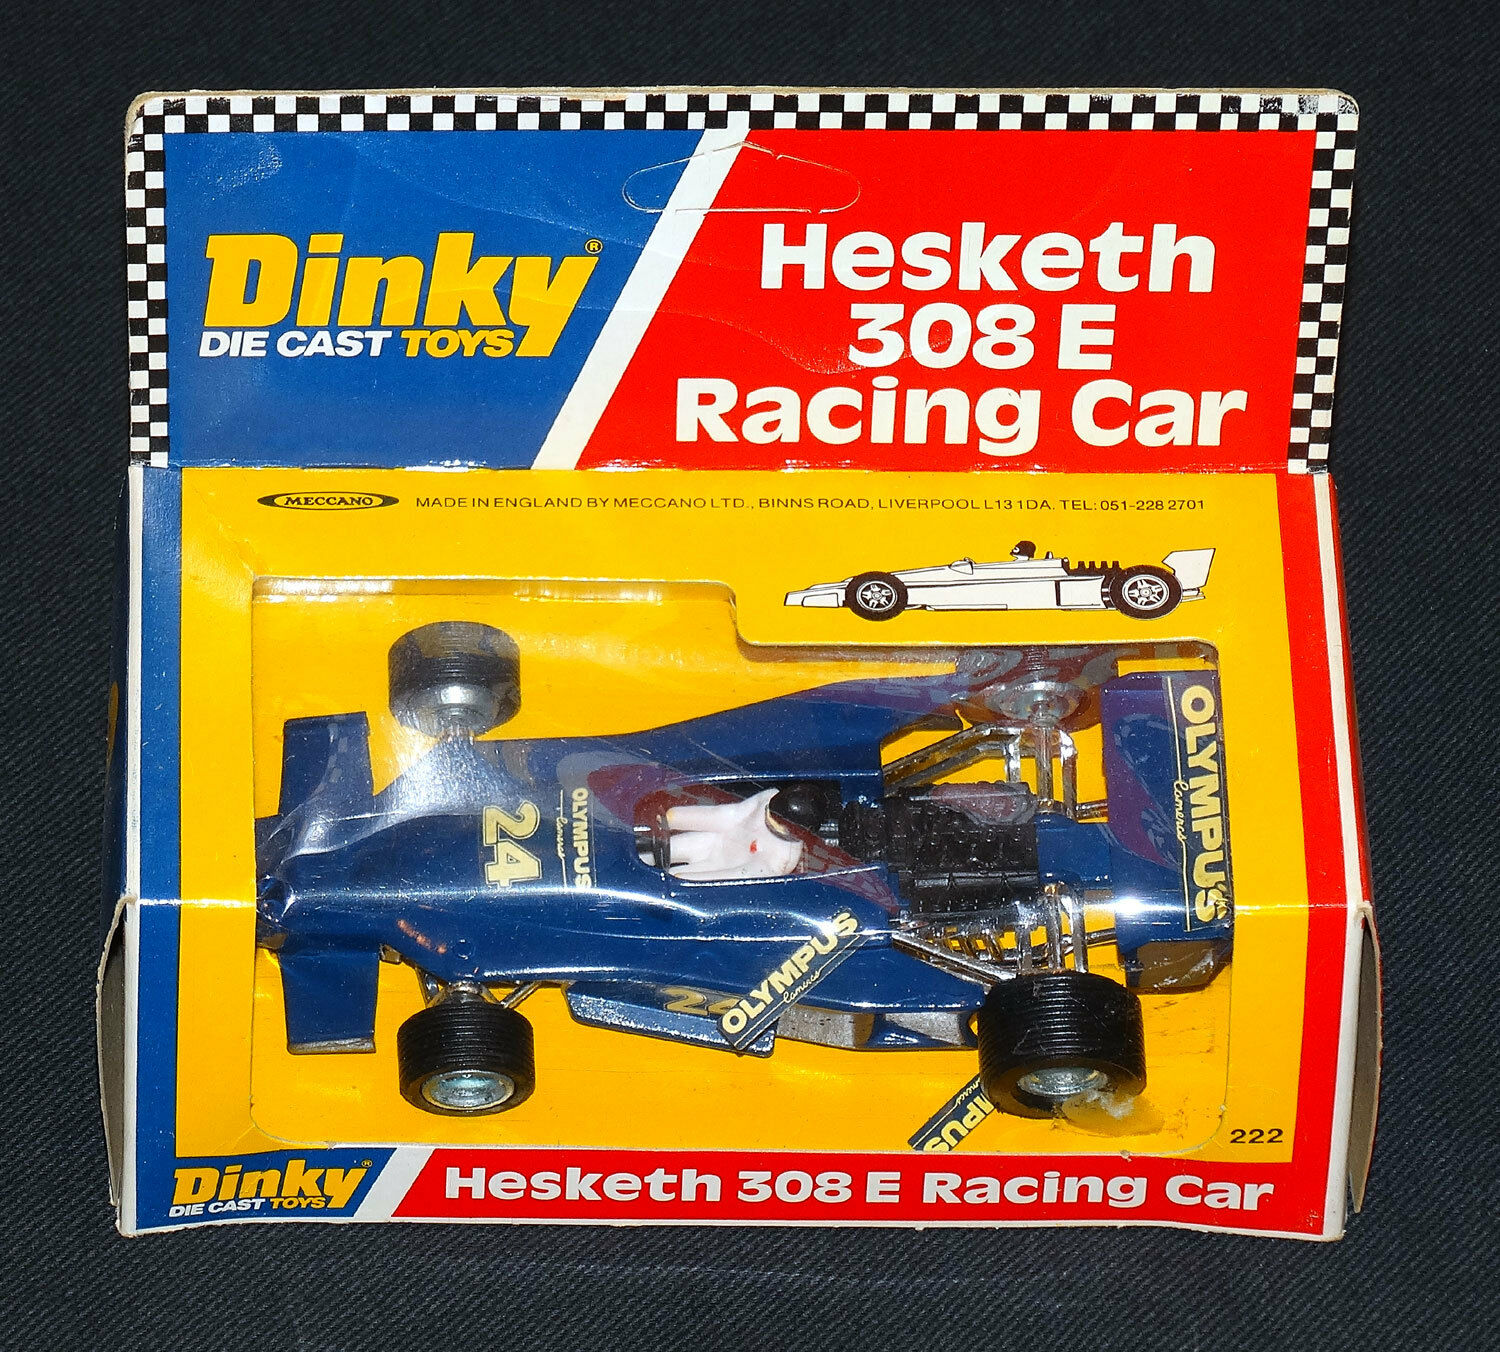 Dinky Hesketh 308 E Racing Car Mint in in in Window Box Clean Vintage 1978 Meccano 03fb30